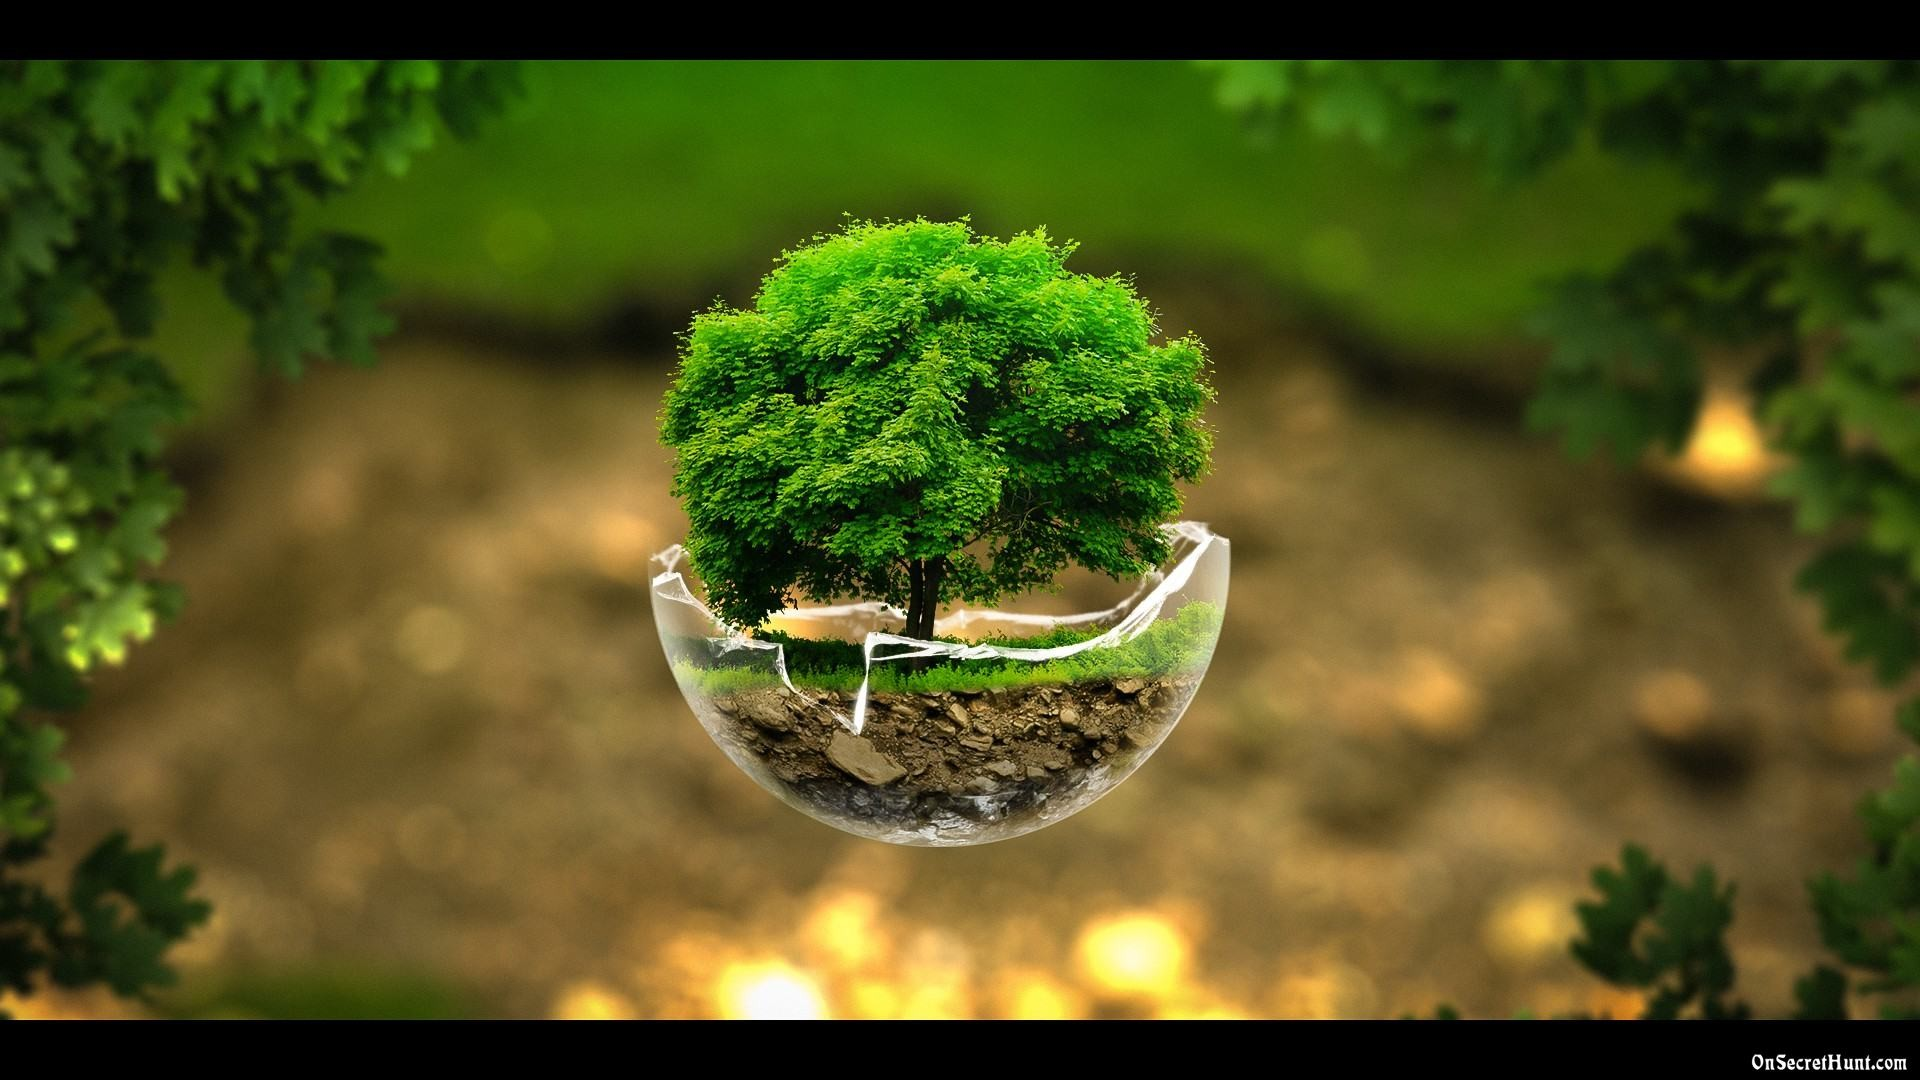 Best Nature Wallpapers Free Download